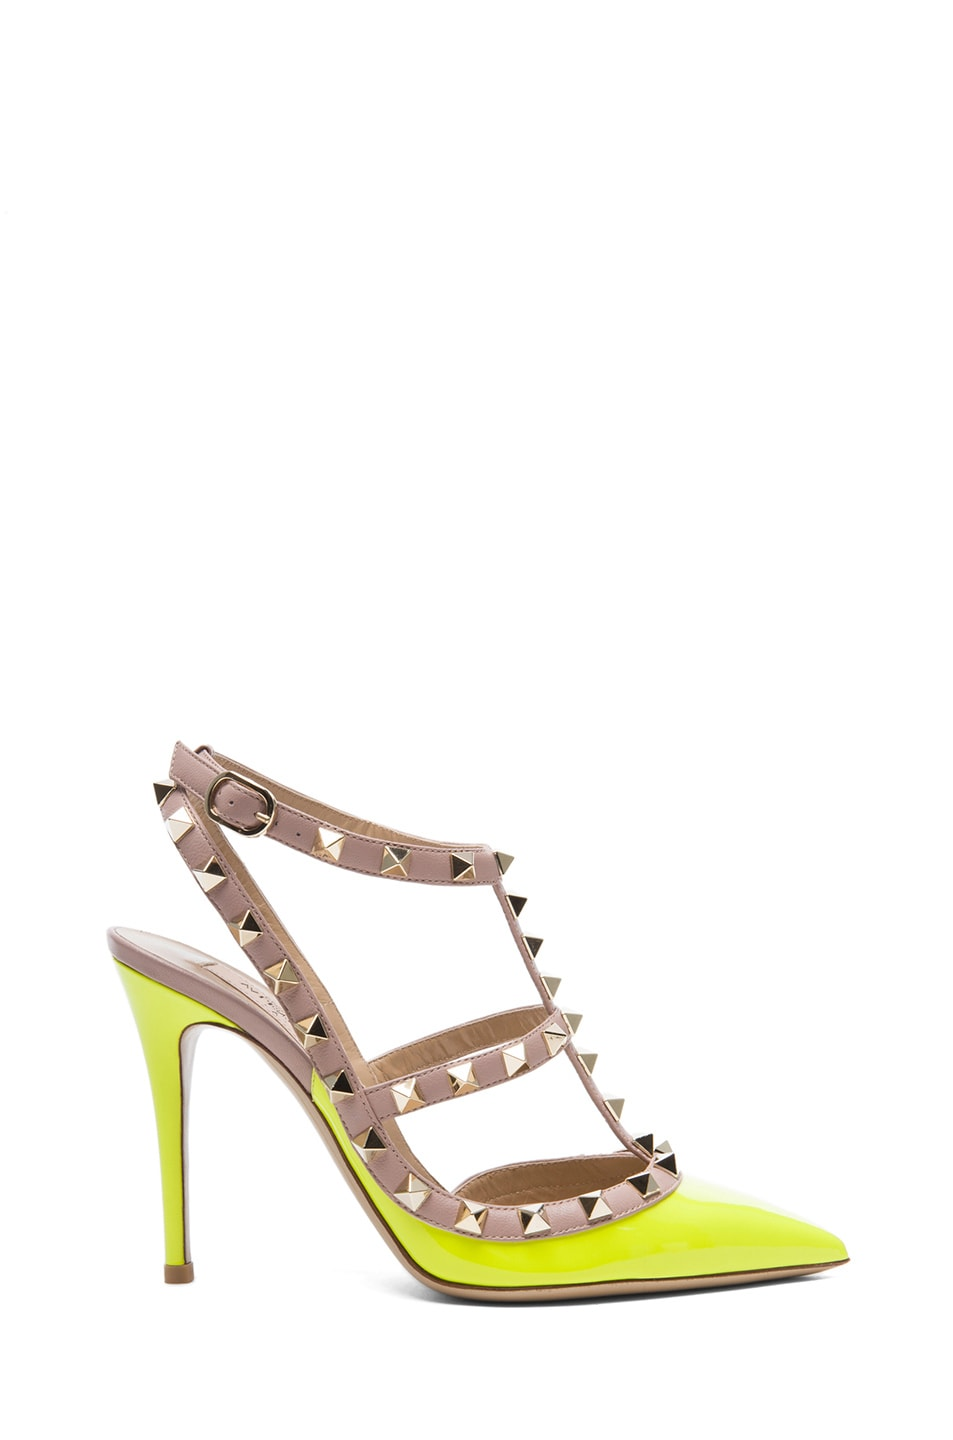 Image 1 of Valentino Rockstud Patent Slingbacks T.100 in Fluo Yellow